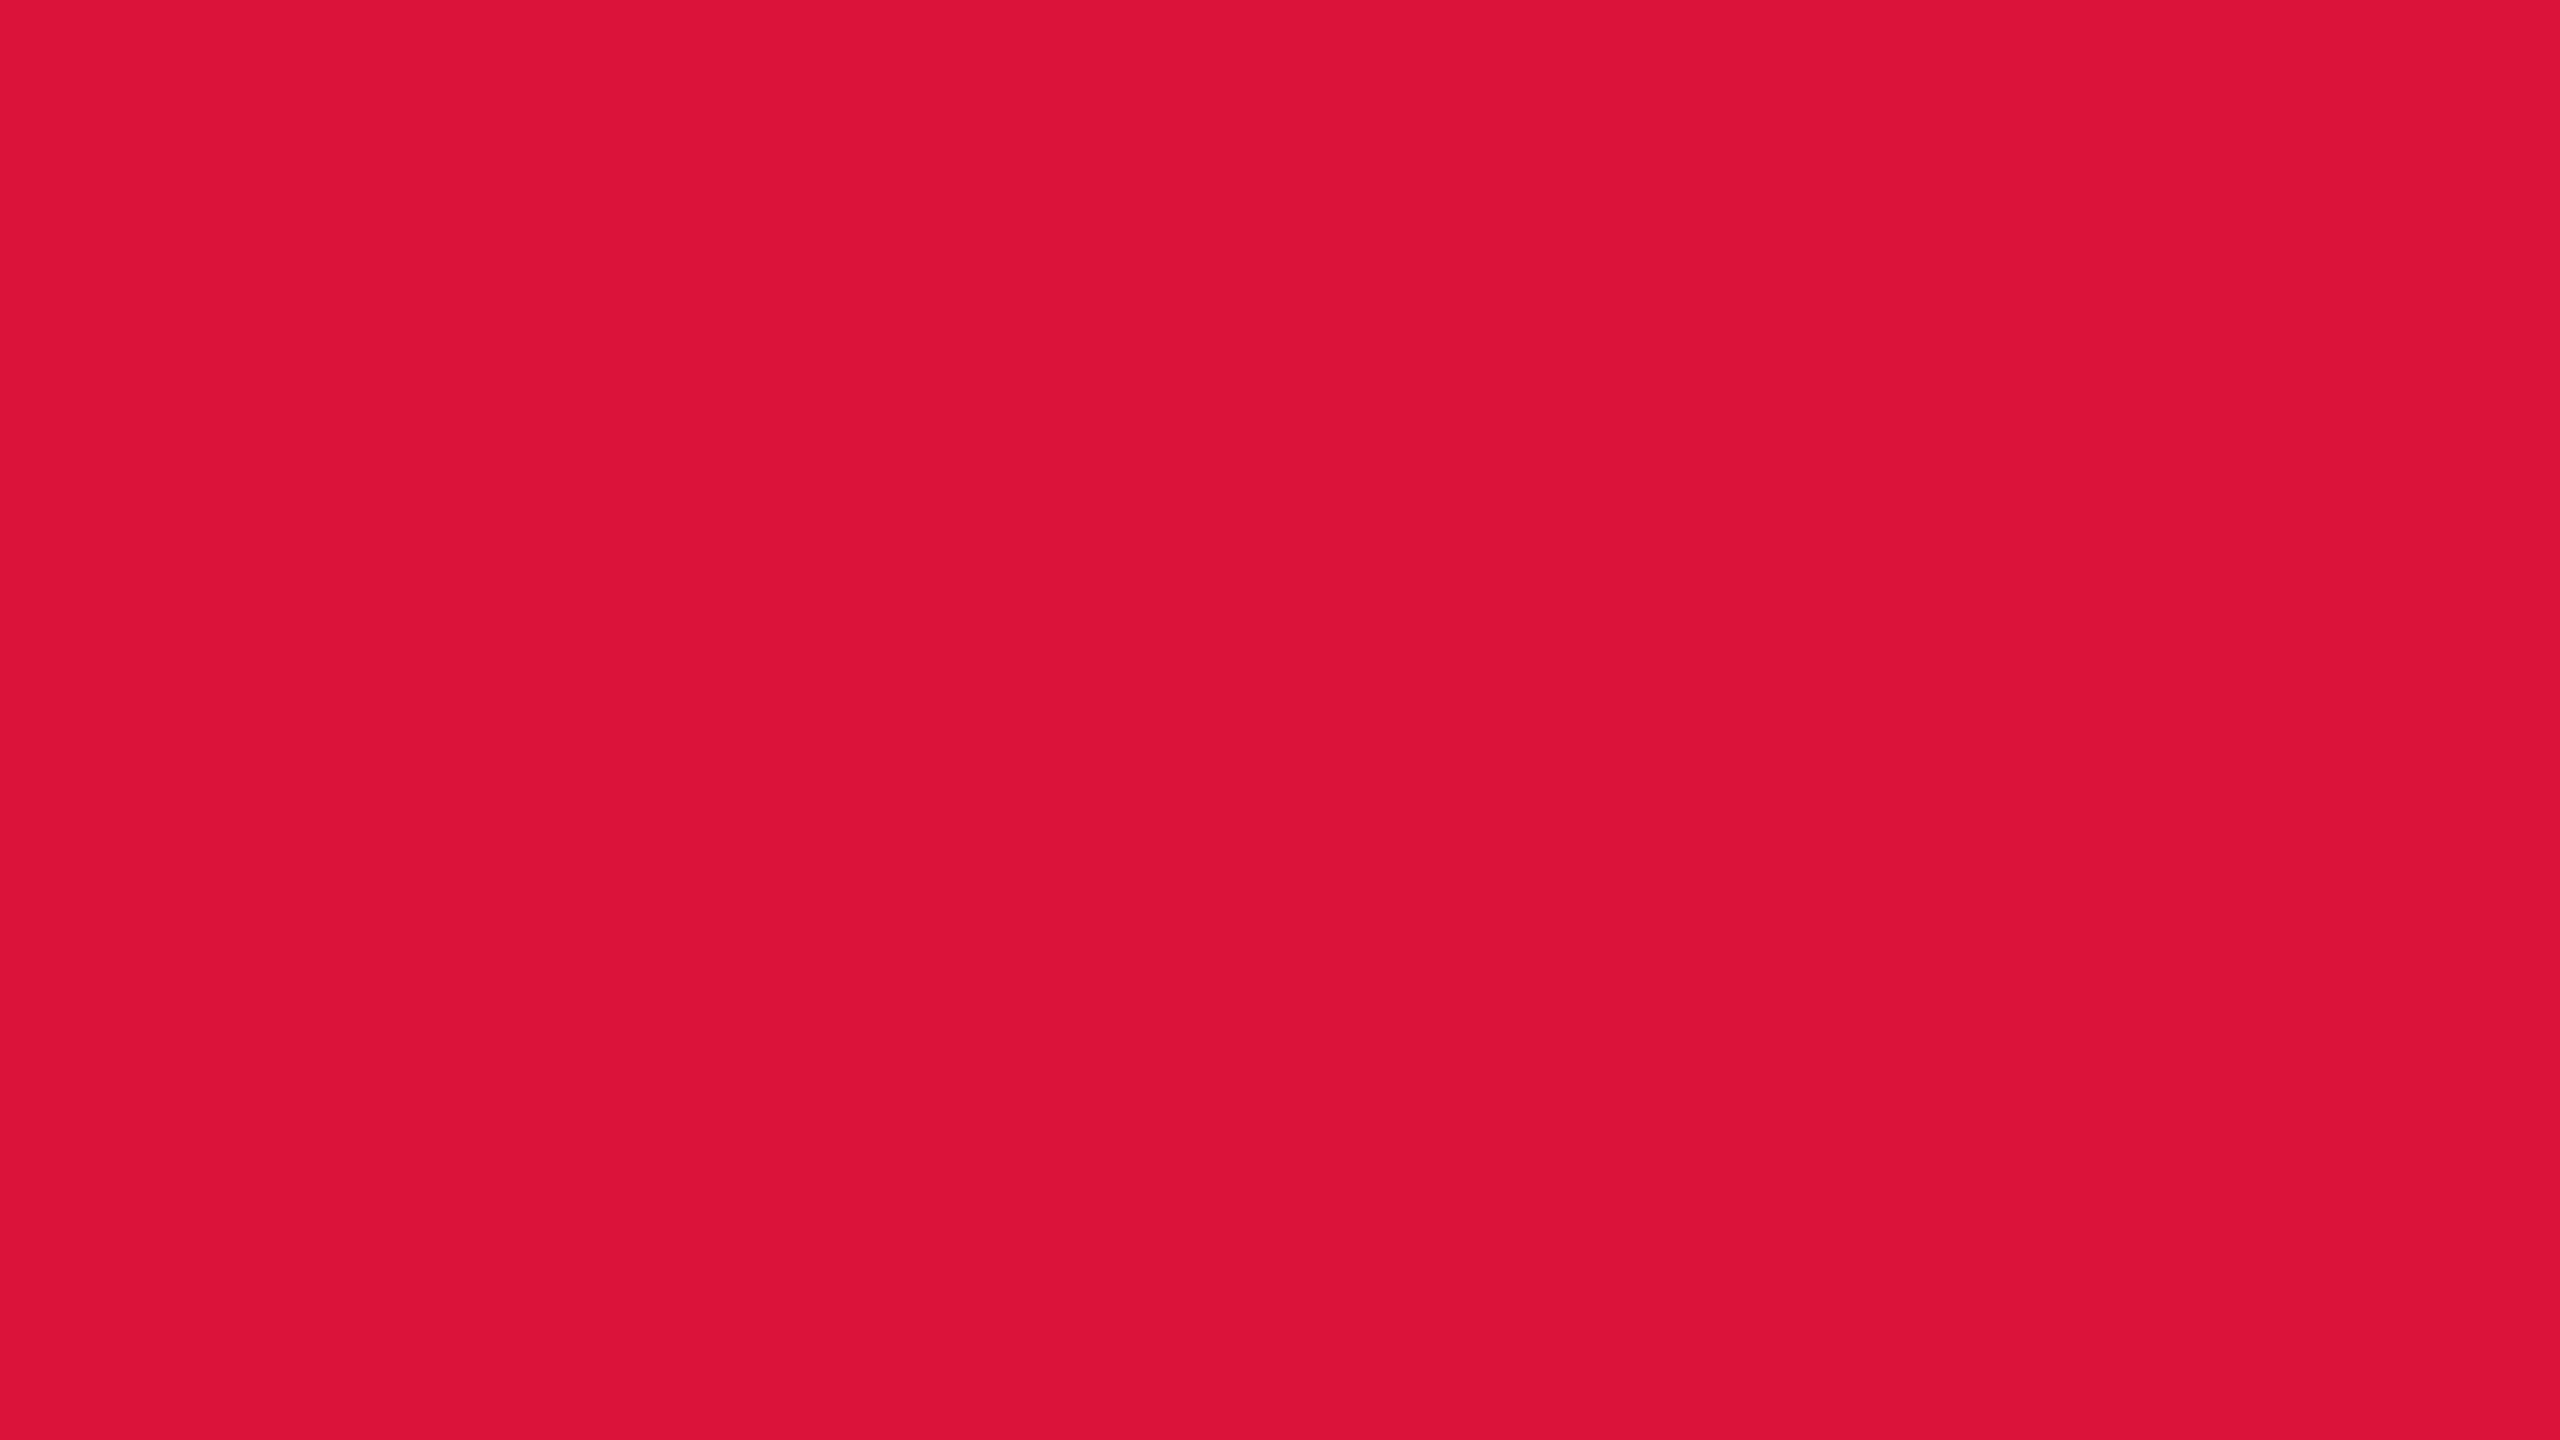 2560x1440 Crimson Solid Color Background